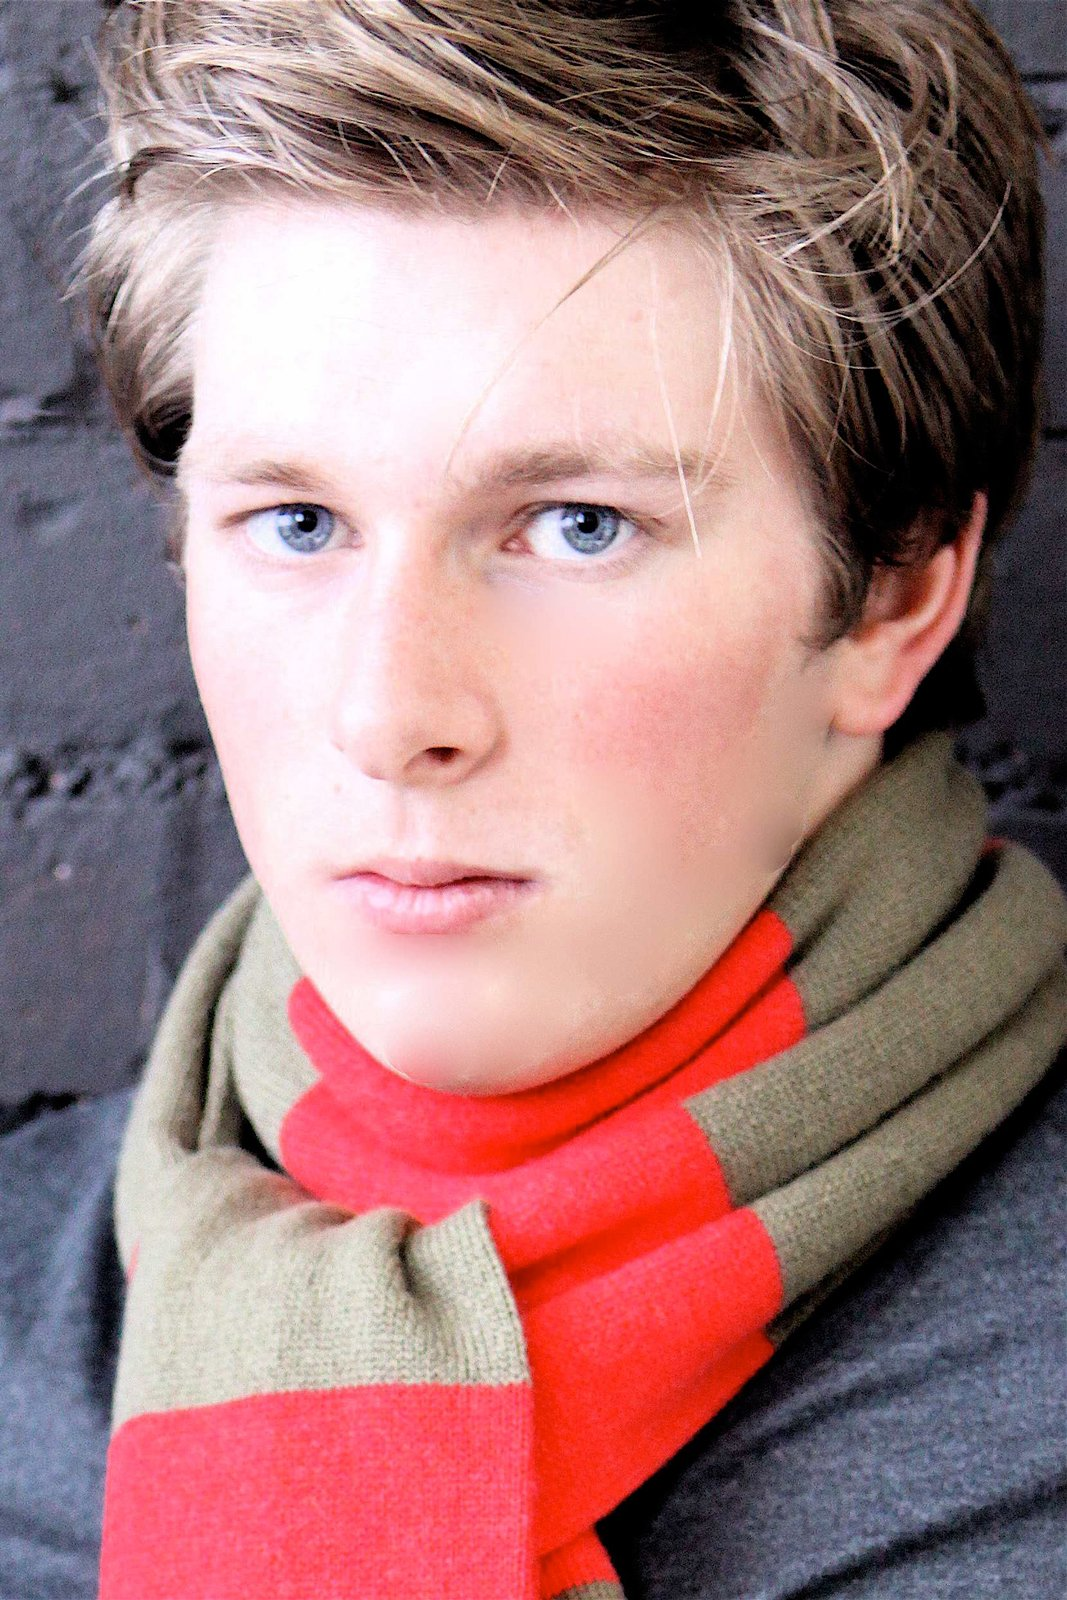 Mens Striped 100% Cashmere Scarf - Light Natural / Light Gray - handmade in Scotland by Love Cashmere by Love Cashmere (Image #2)